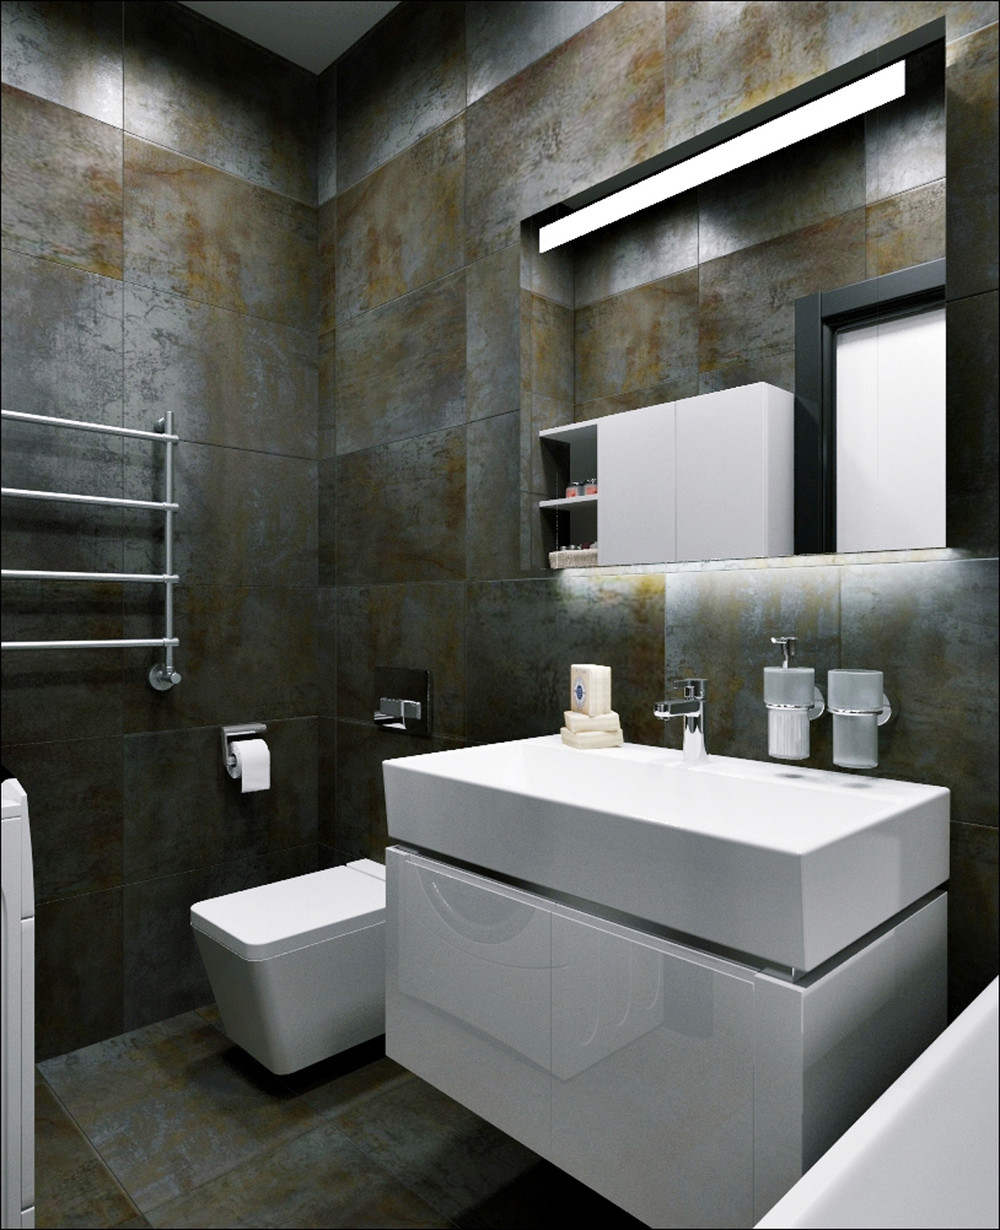 Black And Rust Bathroom Tiles - 3 small apartments that rock uncommon color schemes with floor plans